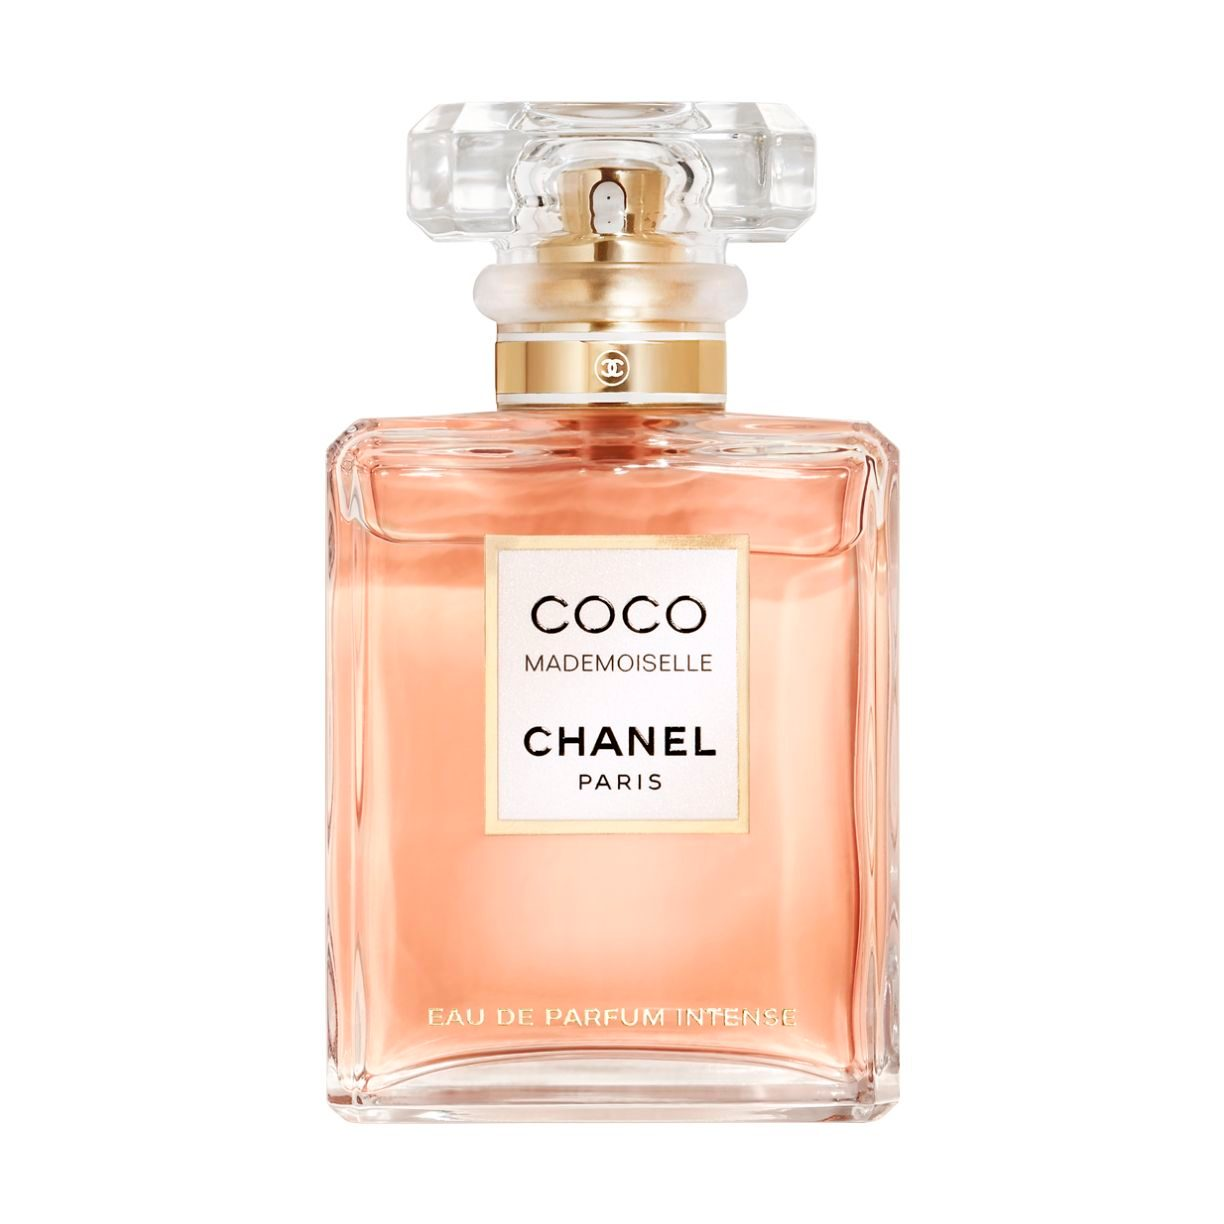 COCO MADEMOISELLE EAU DE PARFUM INTENSE SPRAY 35ml